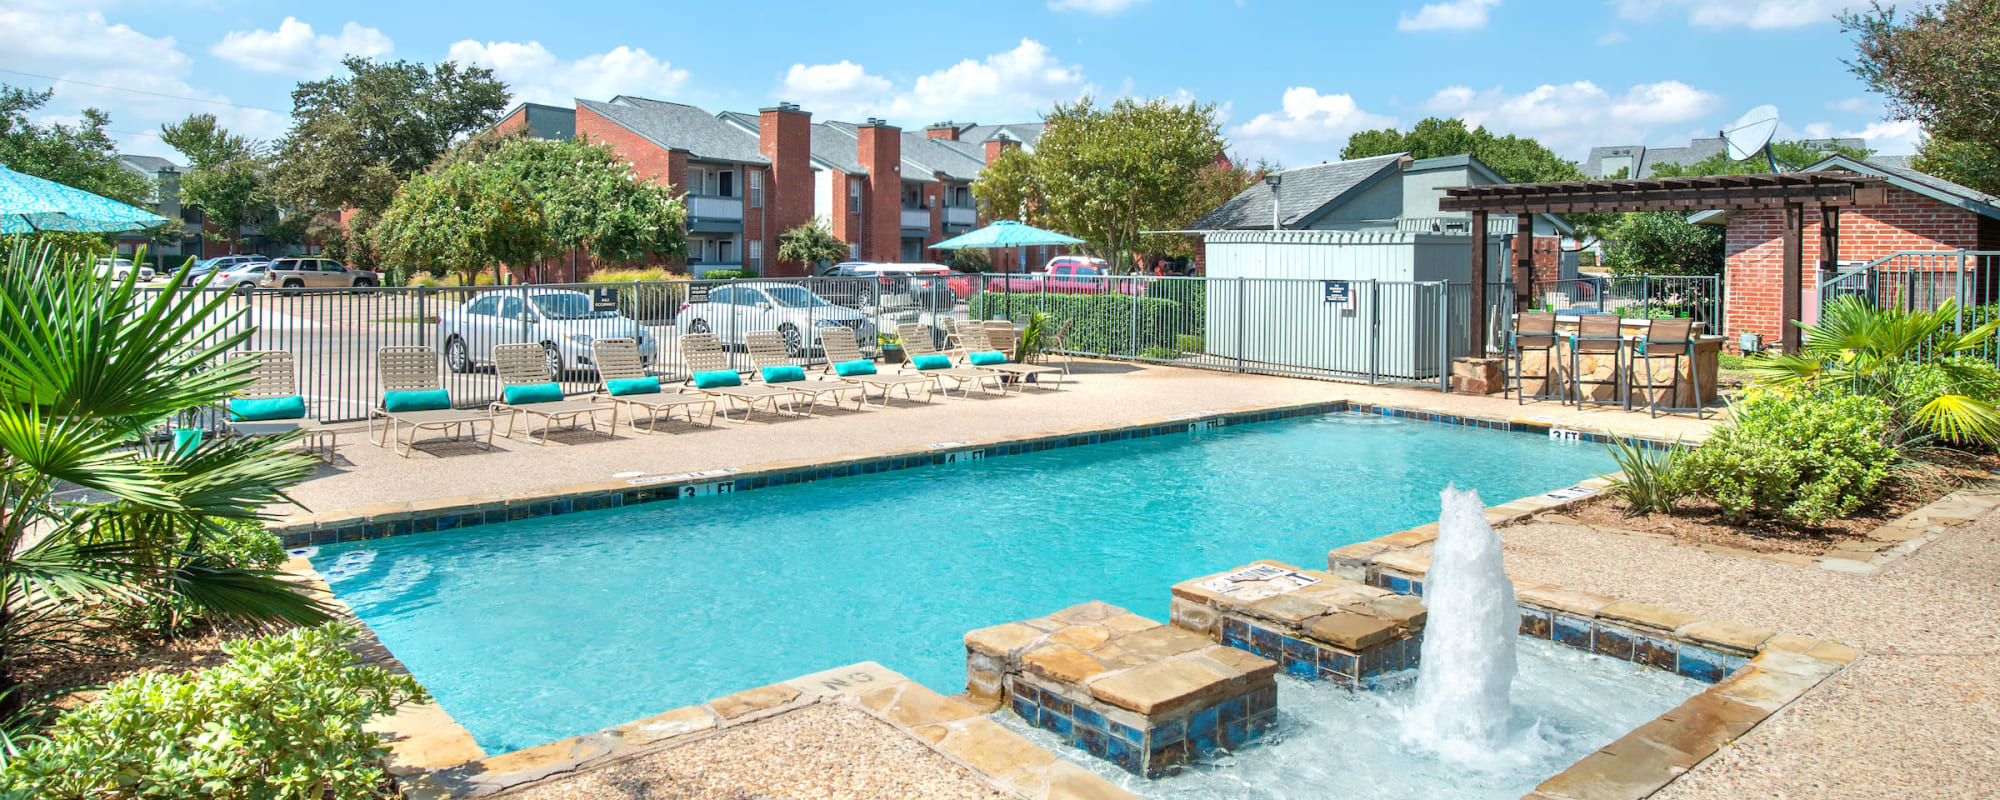 Amenities at Lane at Towne Crossing in Mesquite, Texas